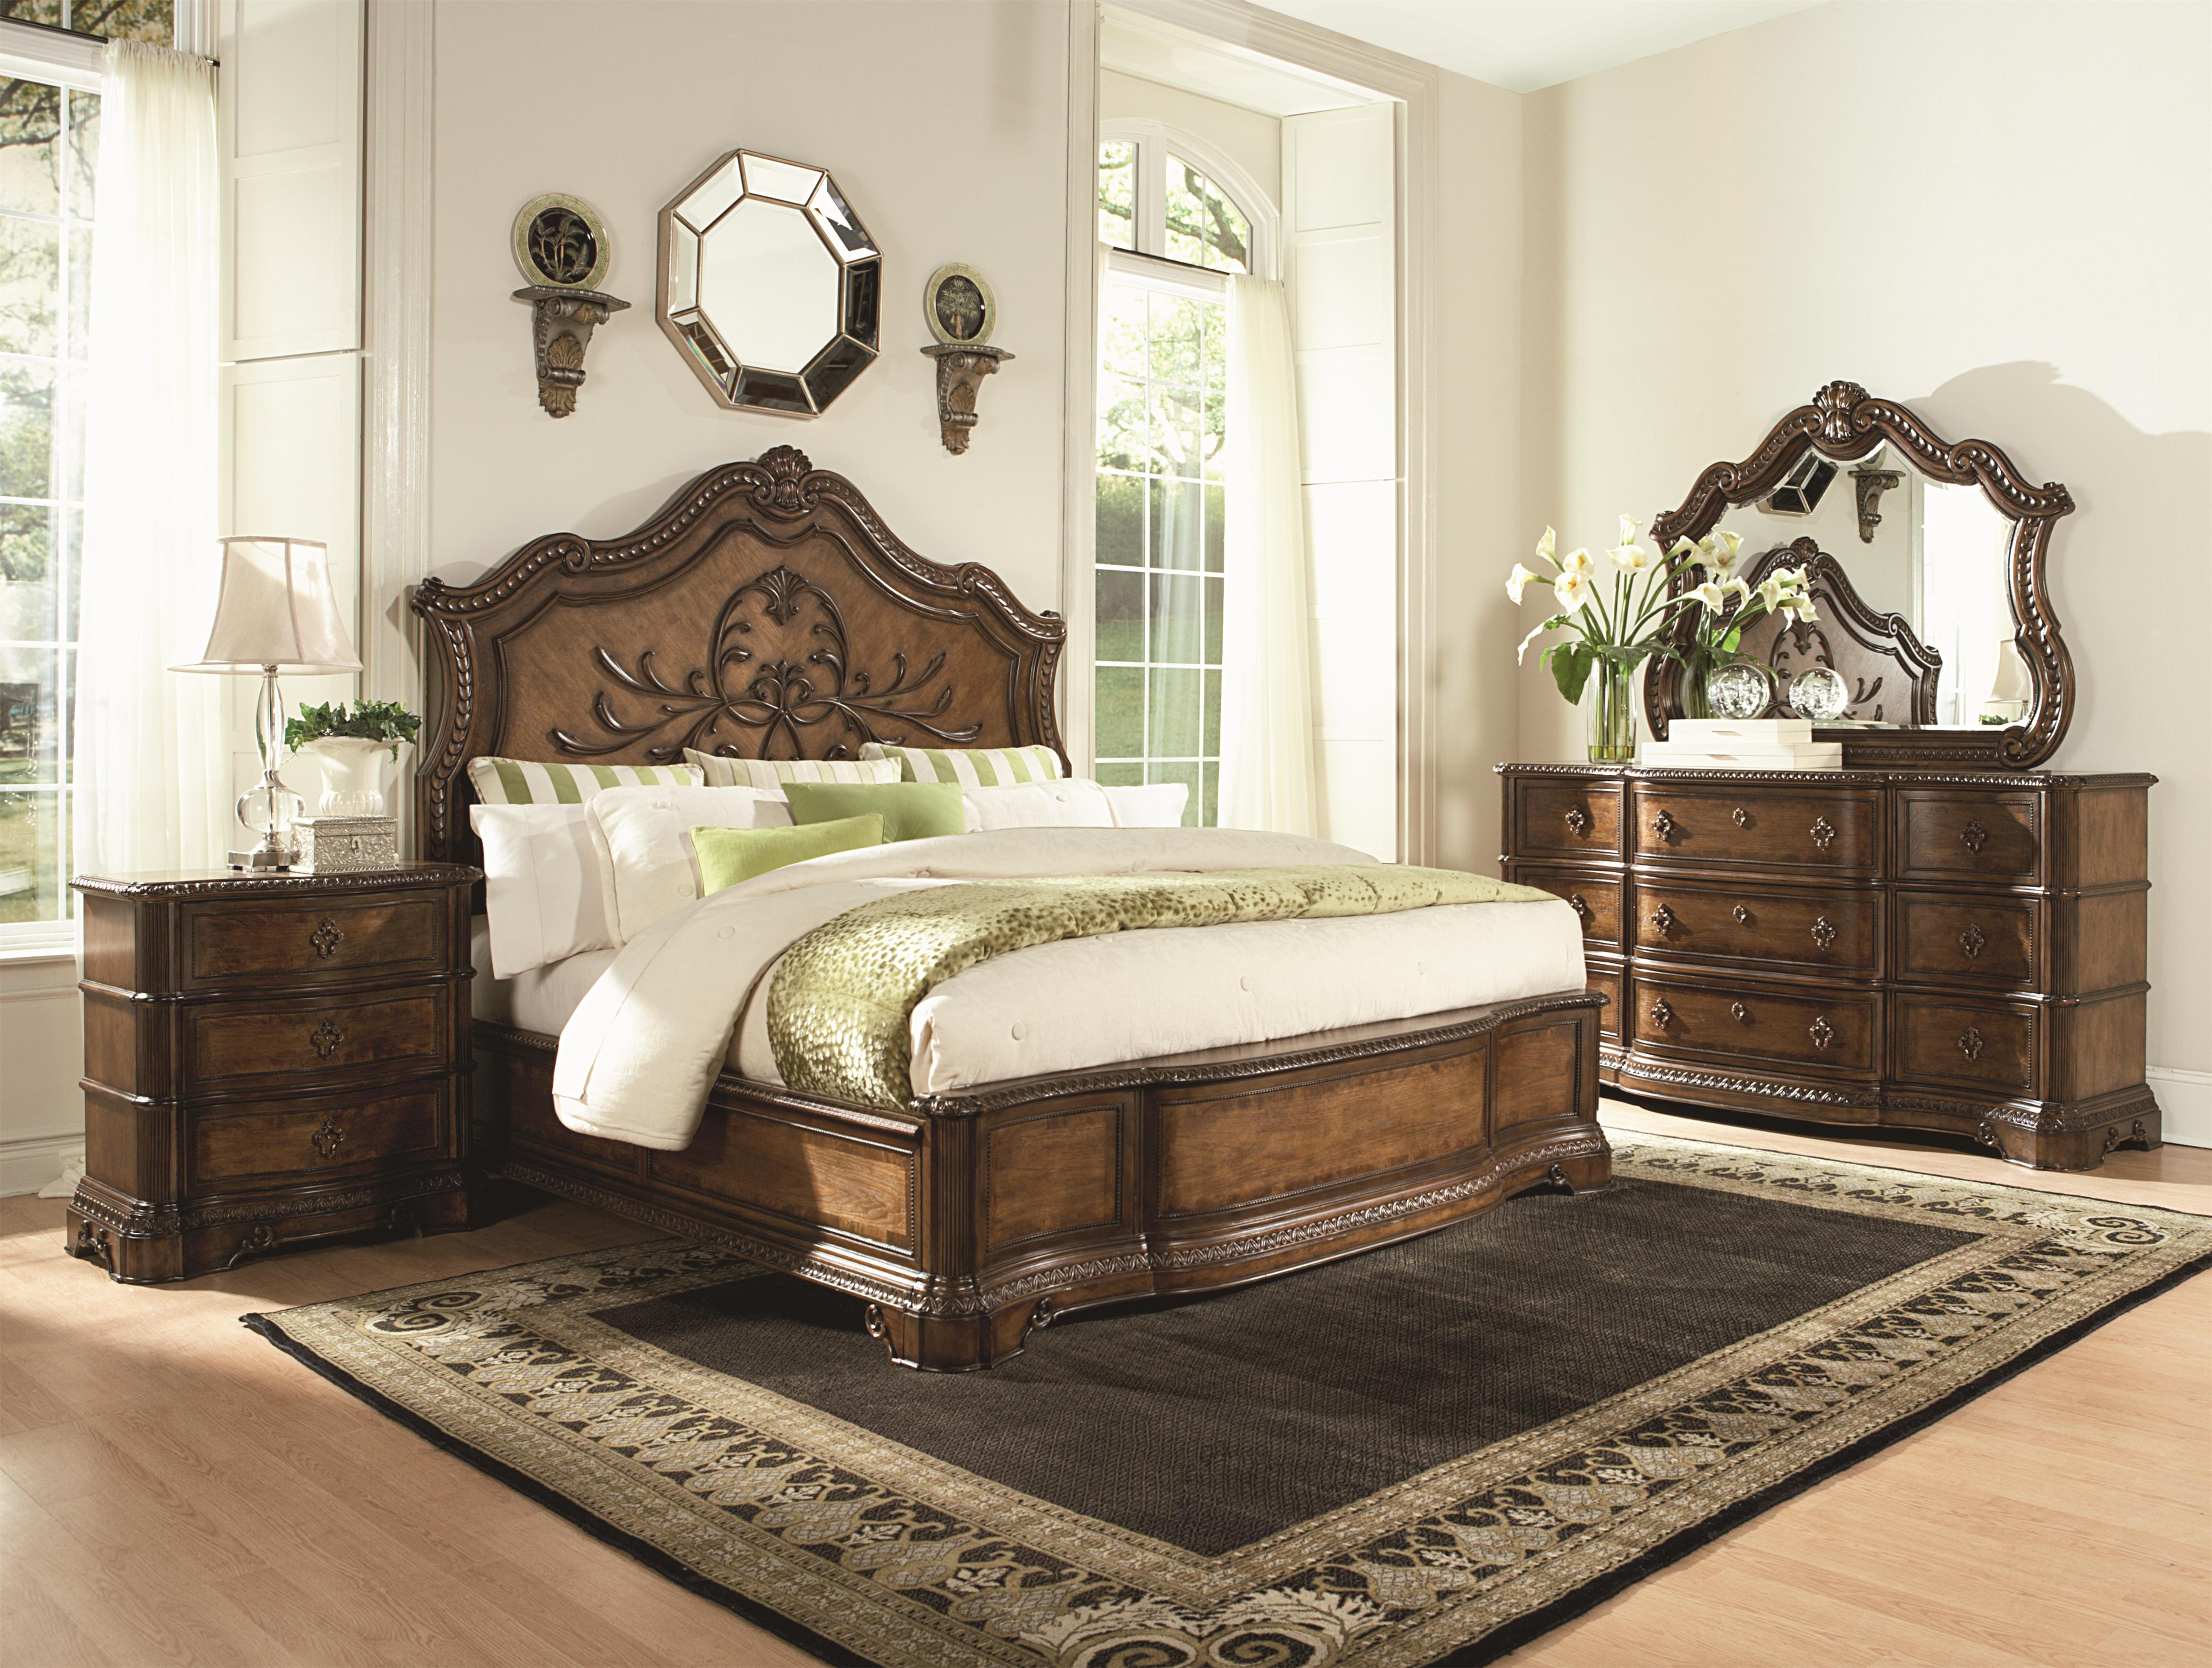 Legacy Classic Pemberleigh Queen Bedroom Group - Item Number: 3100 Q Bedroom Group 1